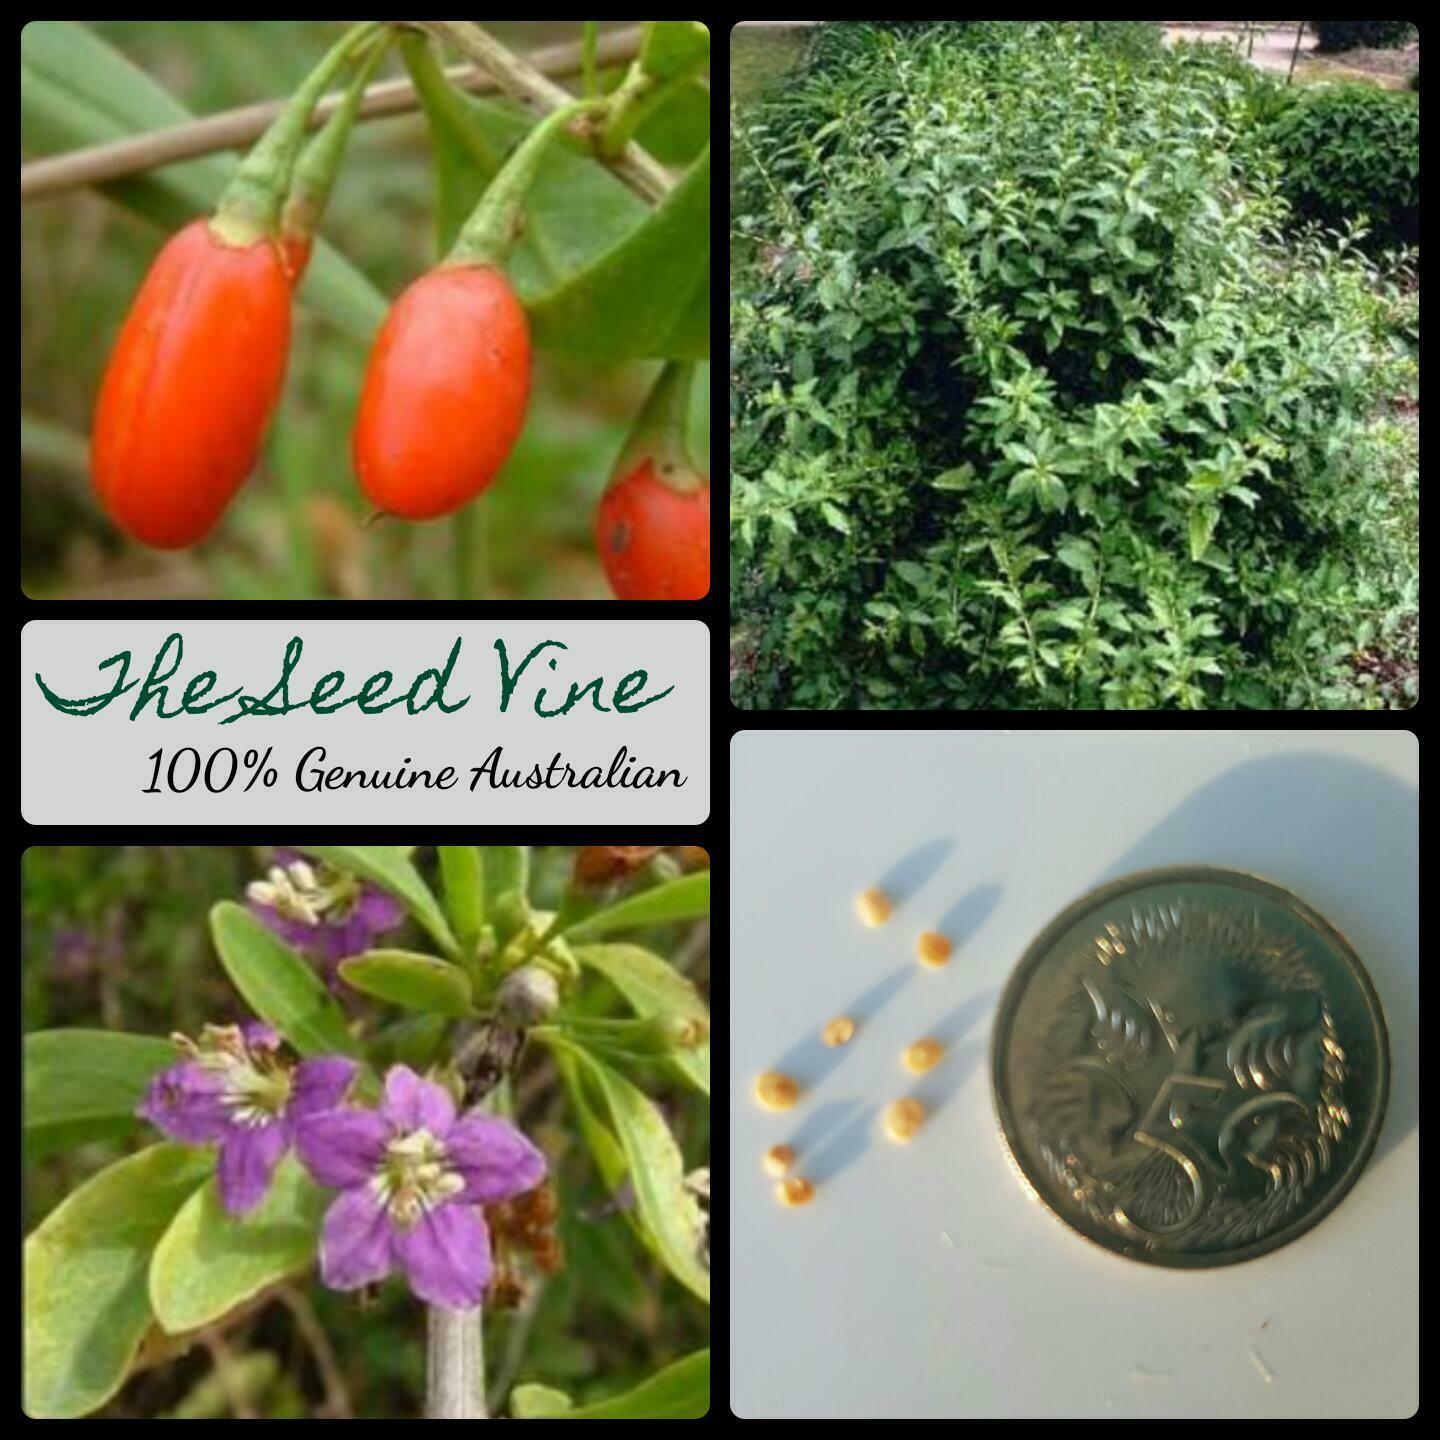 60 Red Goji Berry Wolfberry Seeds Medical Herb N4u8 For Sale